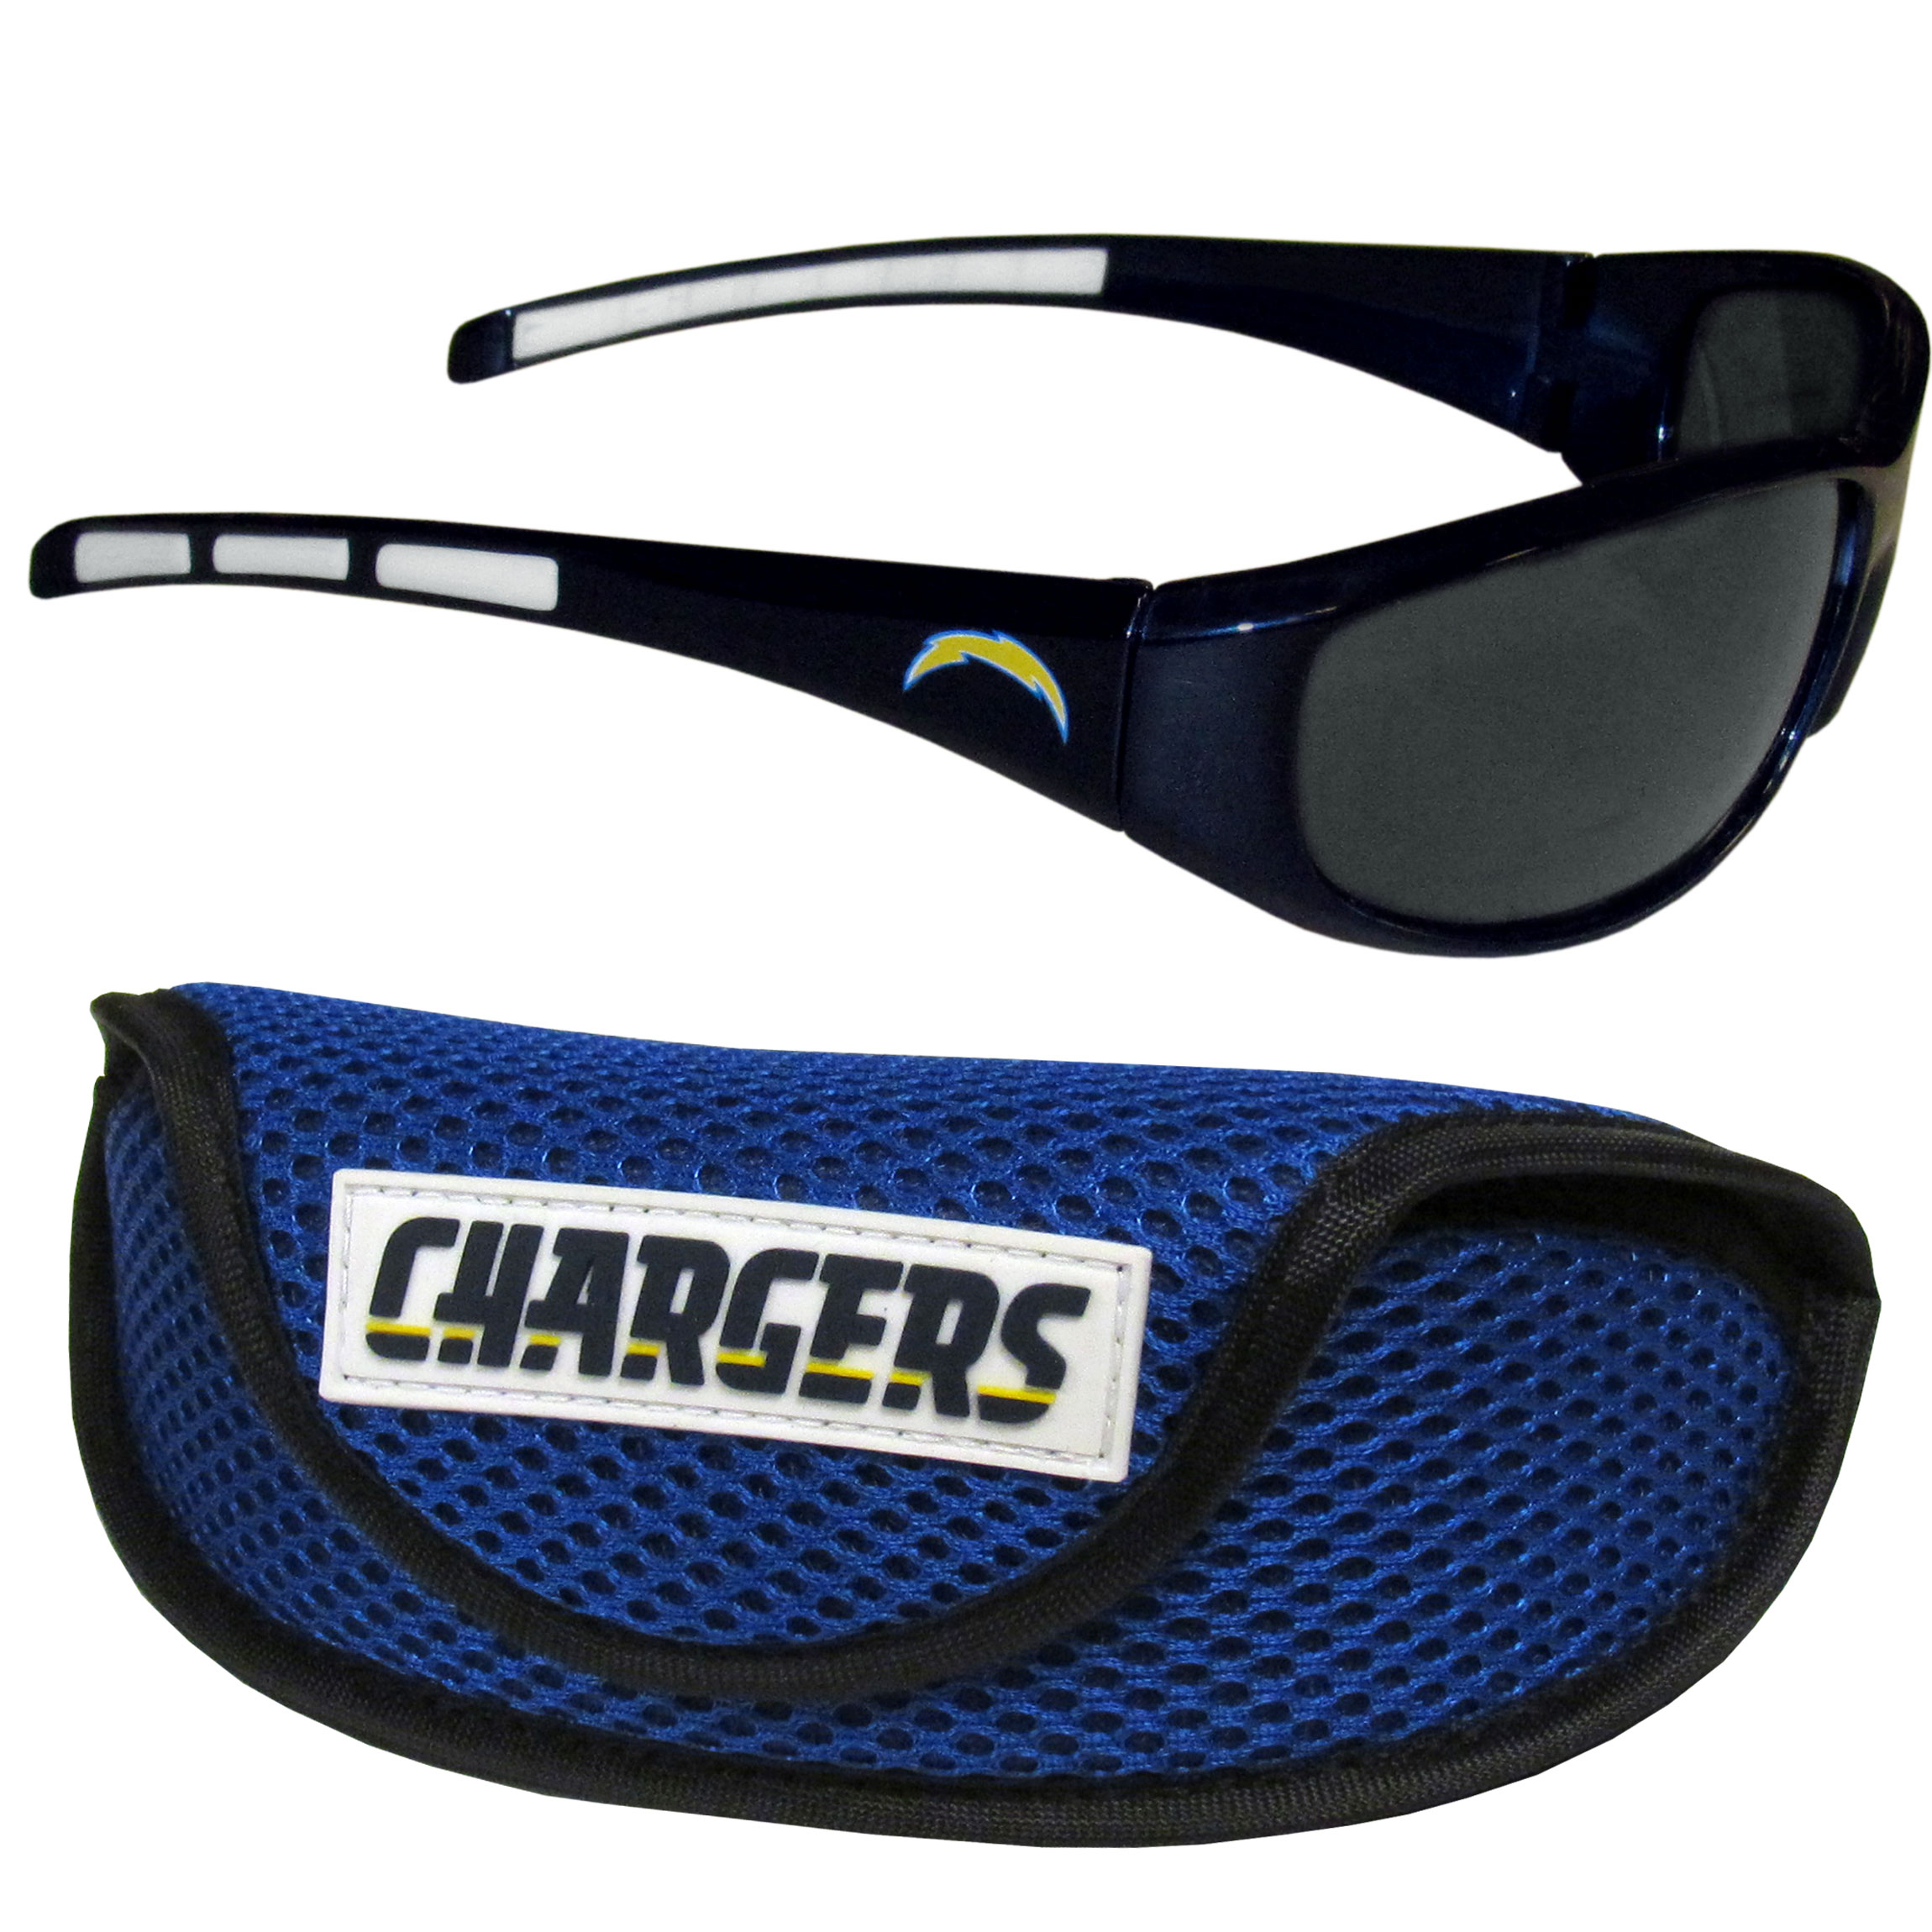 Los Angeles Chargers Wrap Sunglass and Case Set - This great set includes a high quality pair of Los Angeles Chargers wrap sunglasses and sport carrying case.